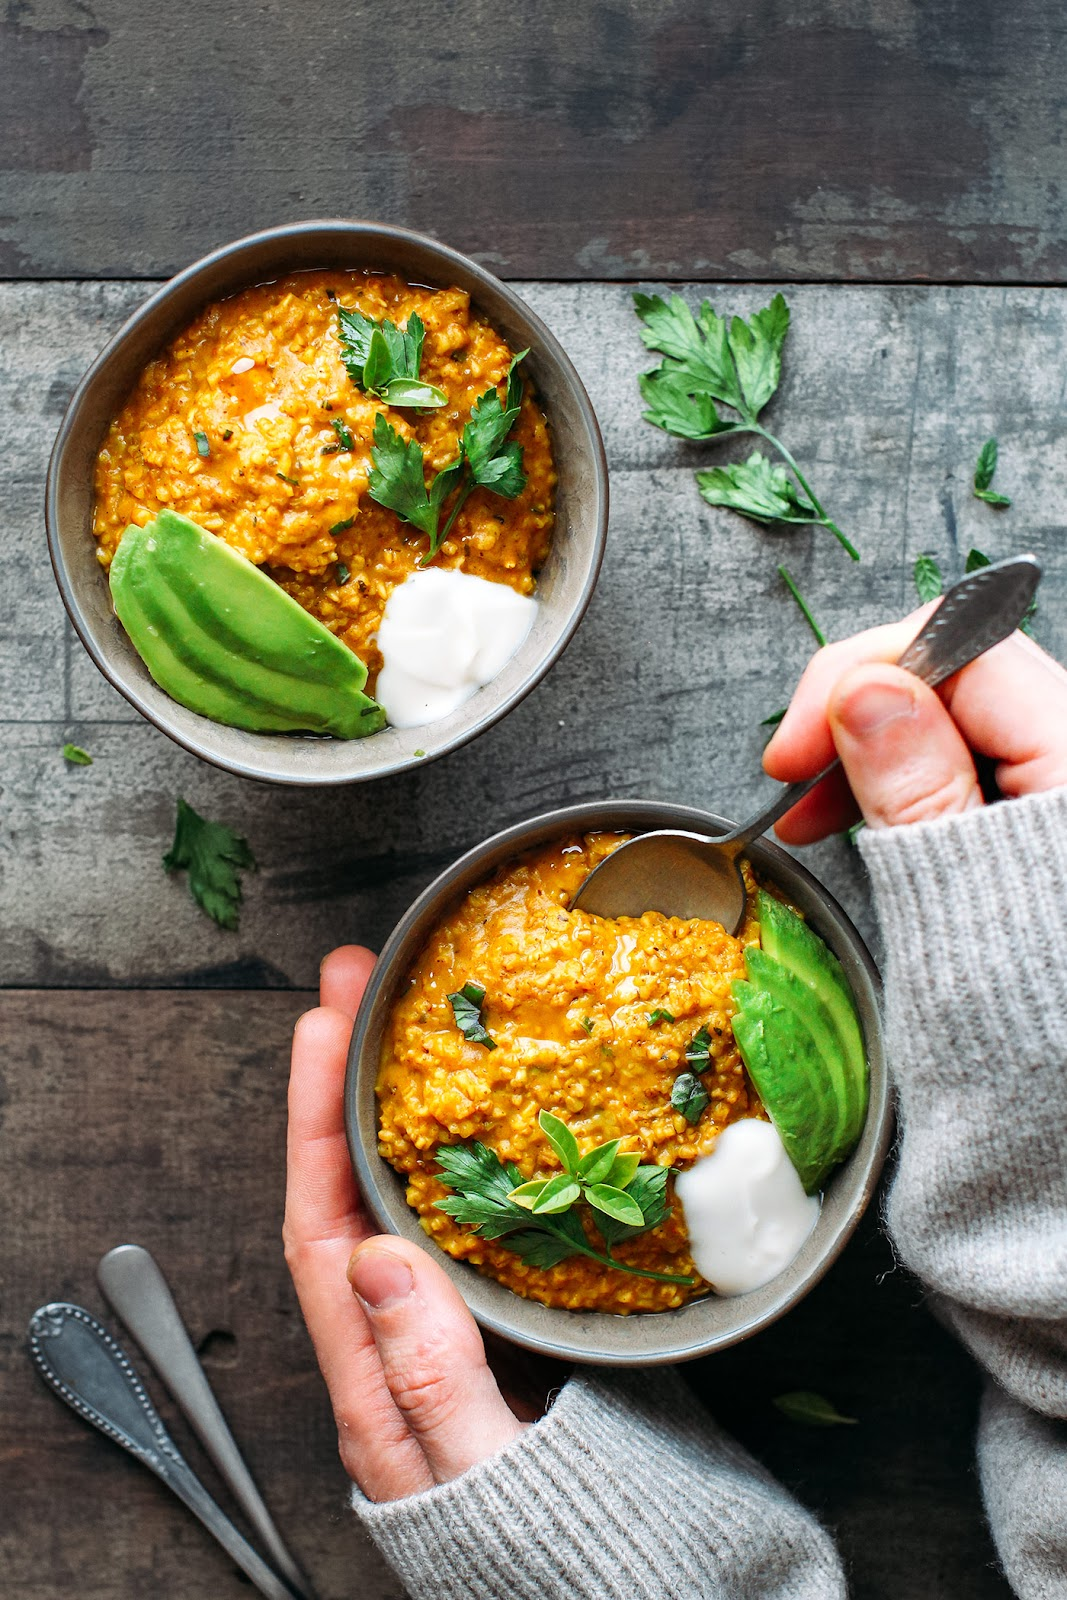 Two bowls of creamy masala steel-cut oats garnished with sliced avocado